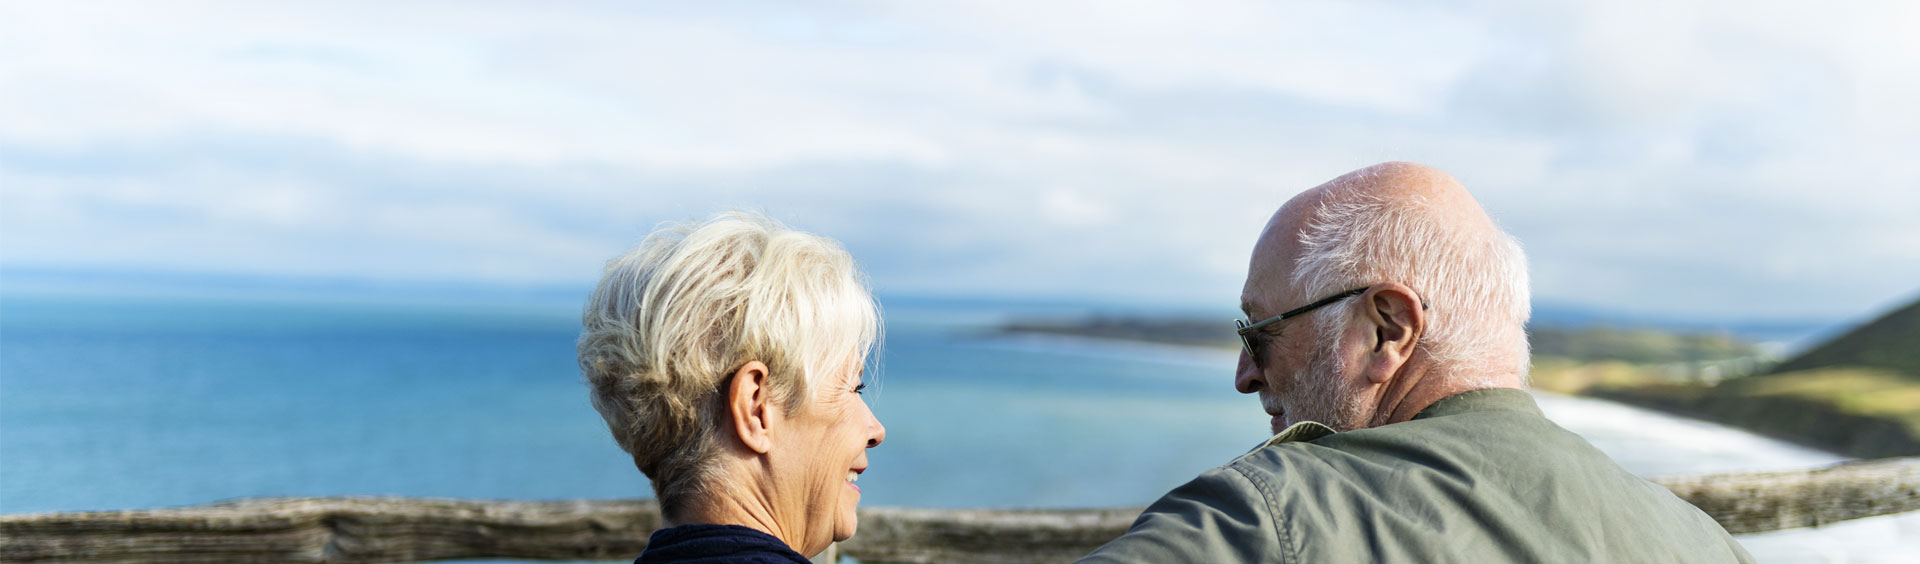 Elderly couple smile at each other overlooking the ocean